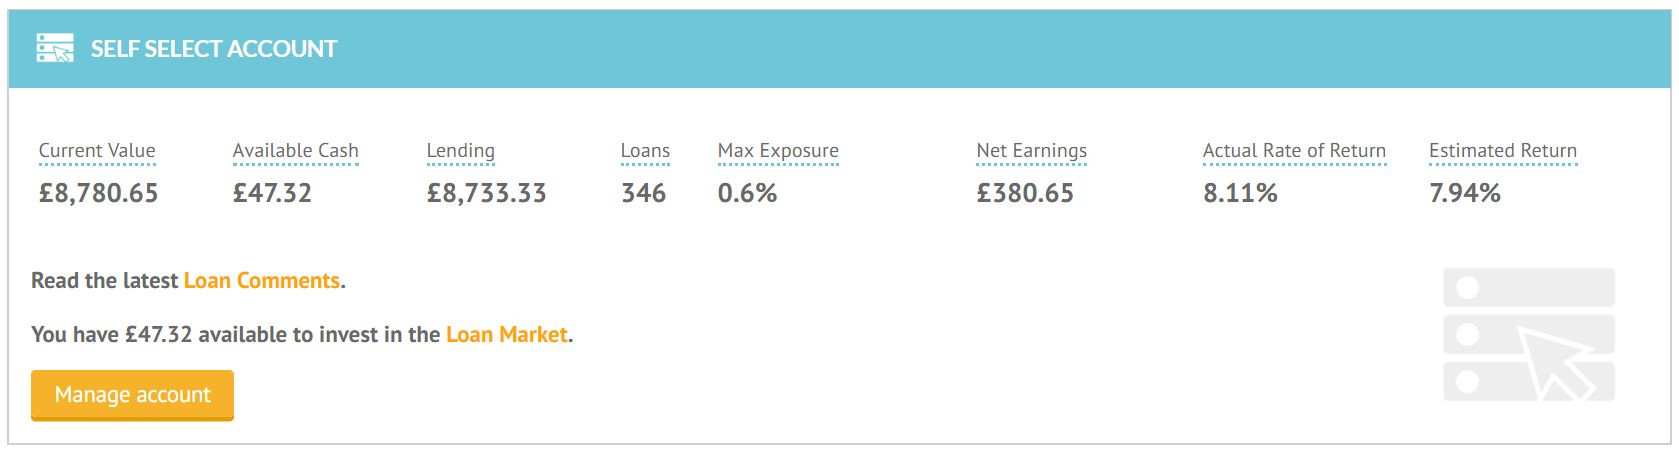 Lending Crowd Account Screenshot for Feb 2019 Update